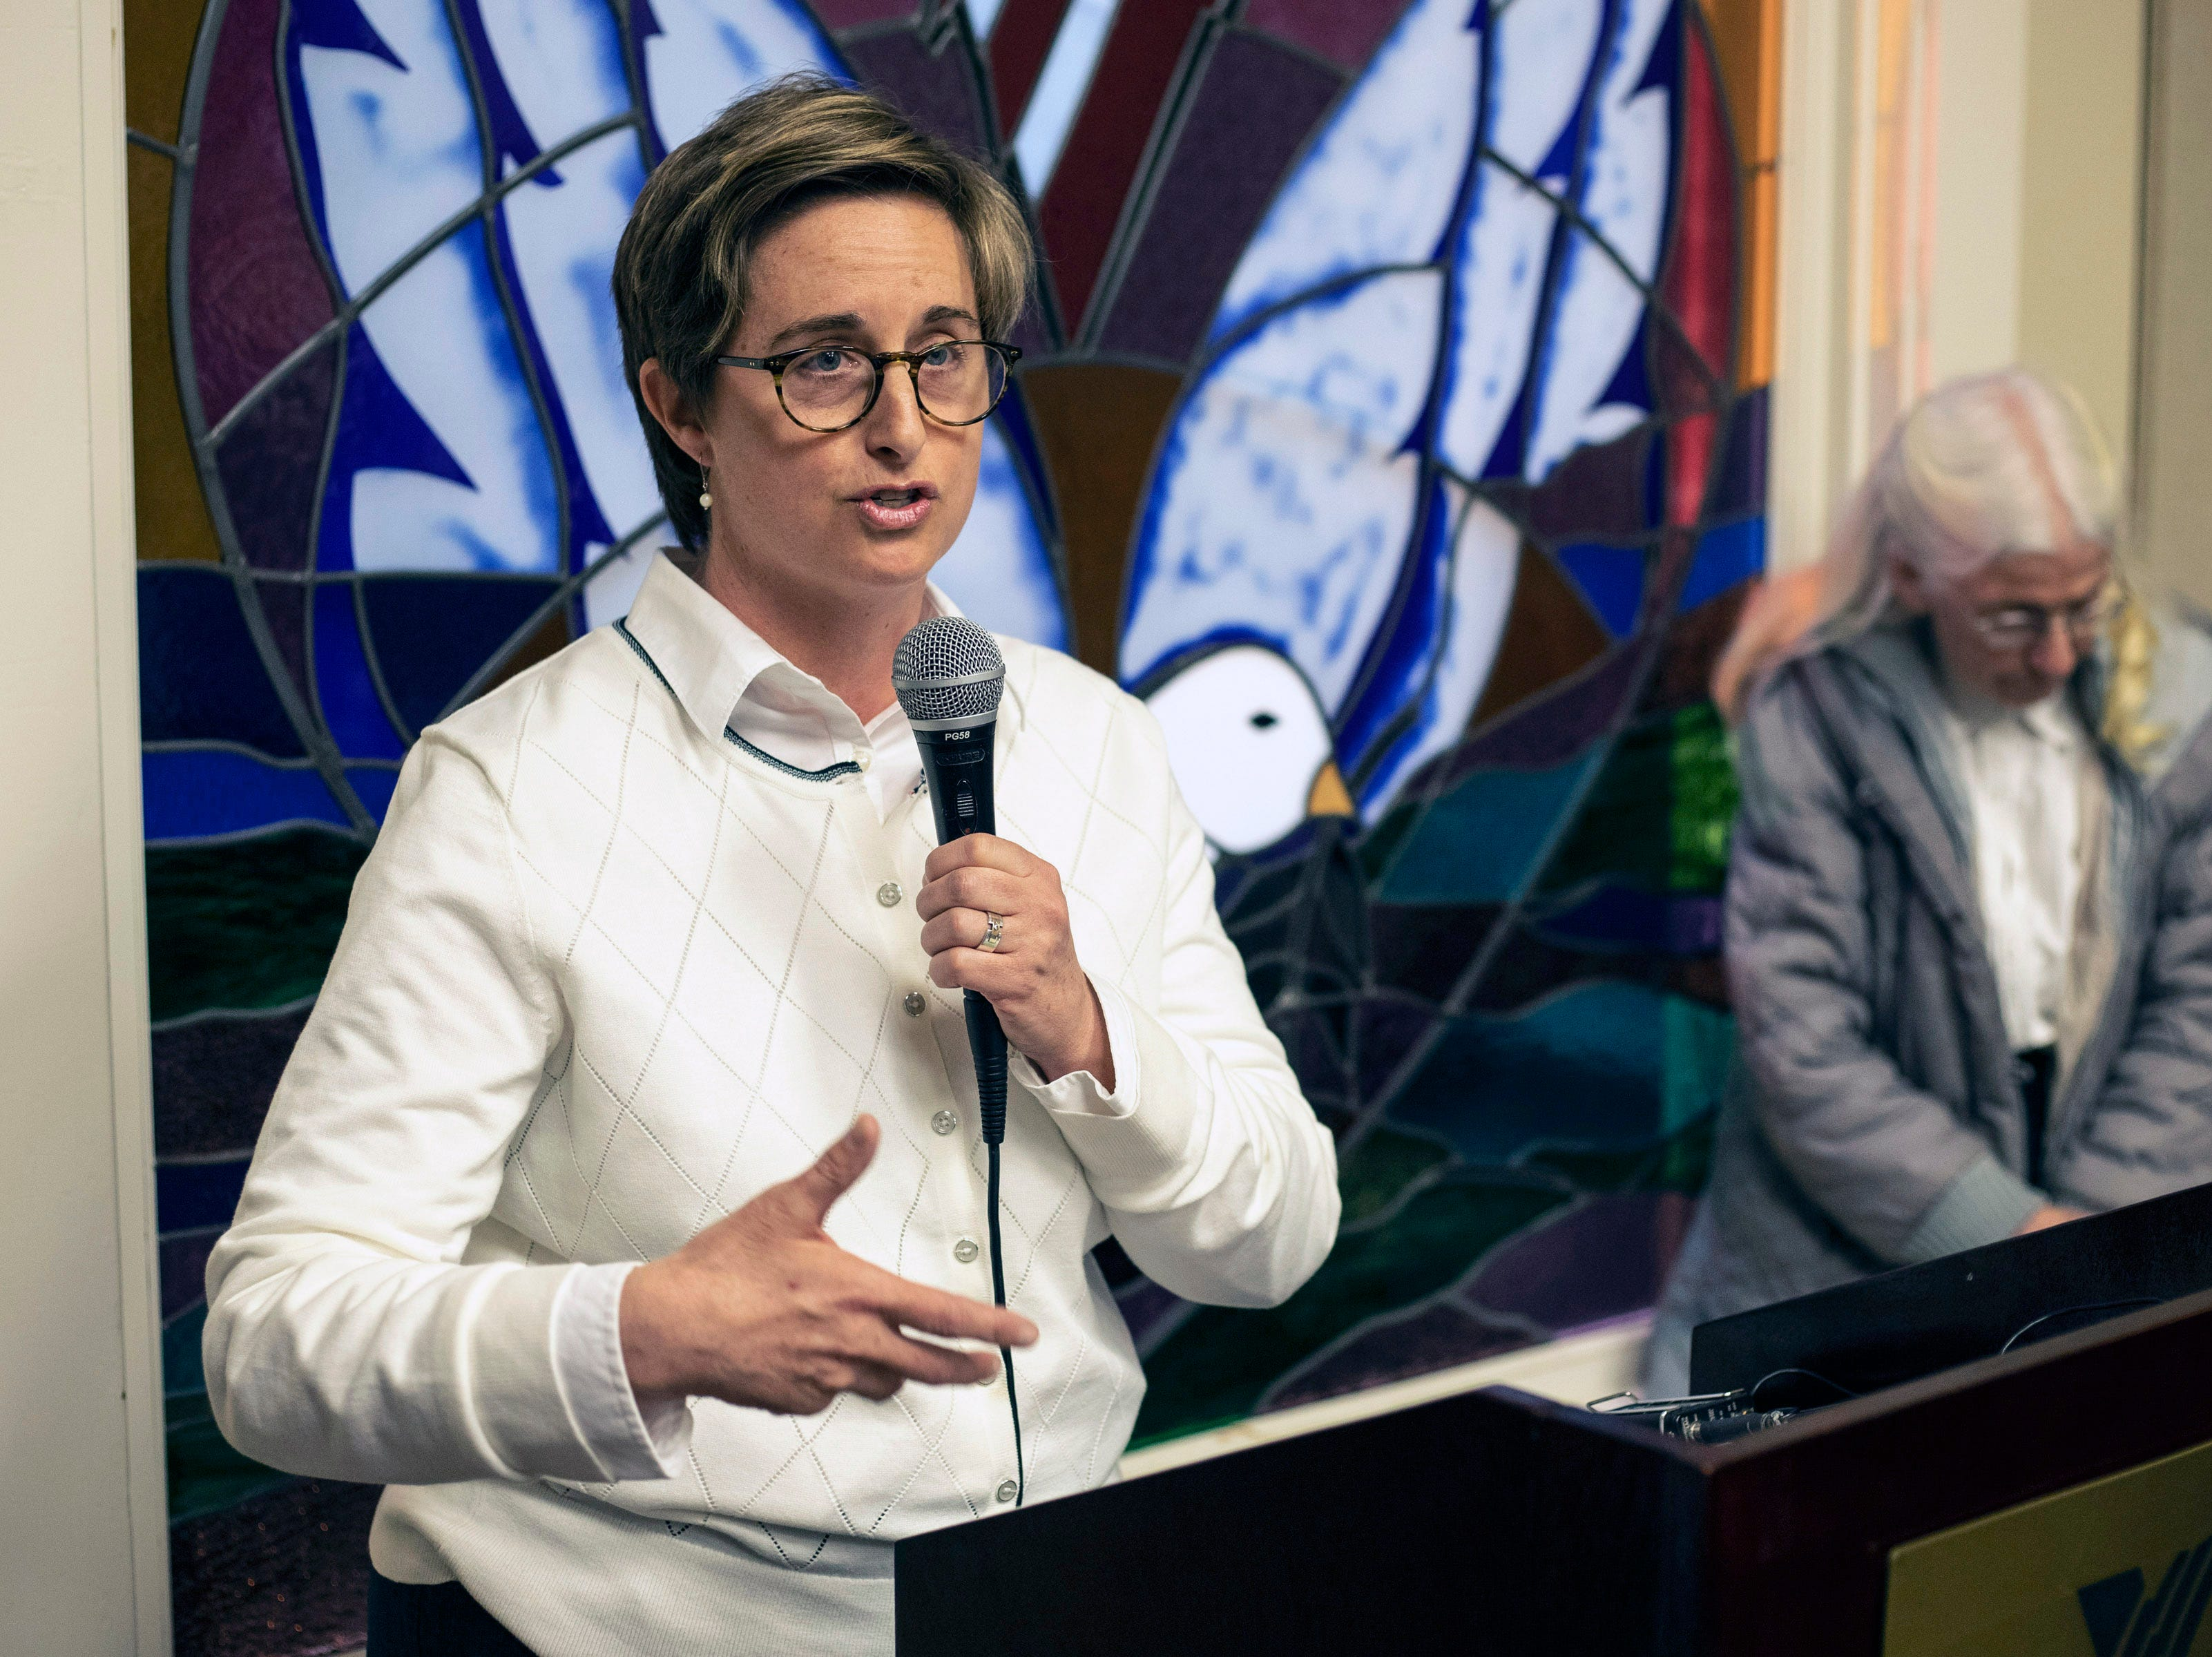 Allison King was a featured speaker during the annual Catholics for Fairness Pilgrimage on Sunday afternoon. March 24, 2019